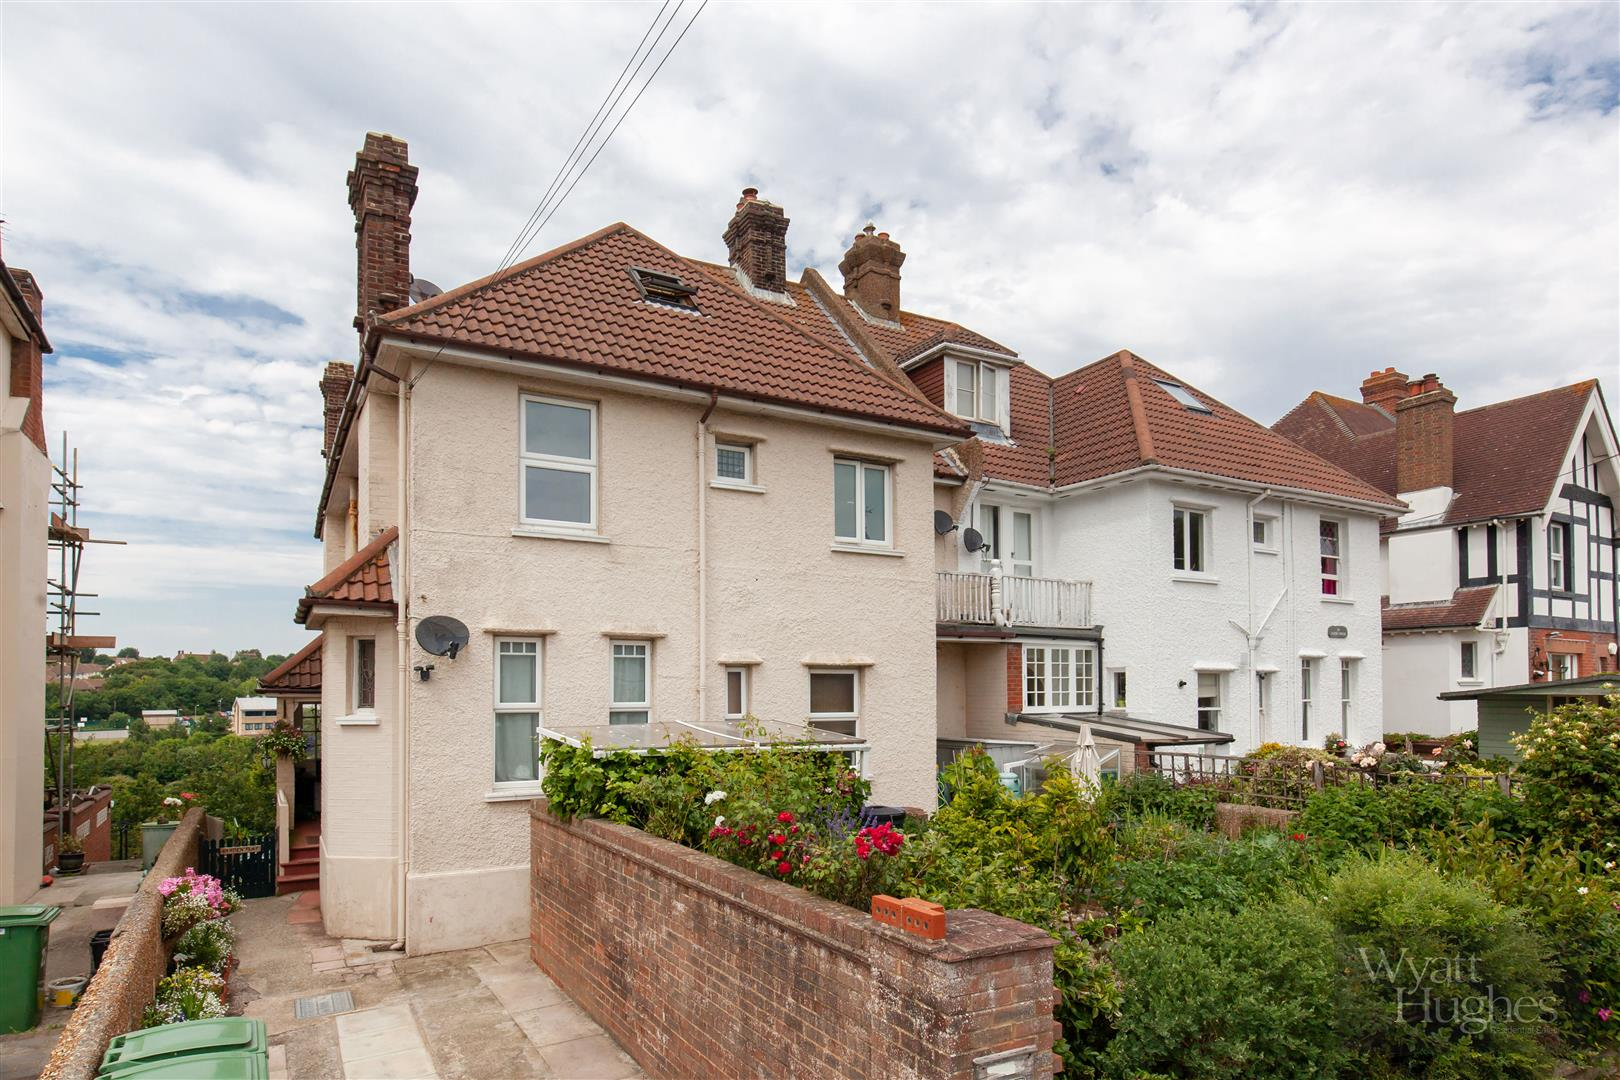 3 bed flat for sale in St. Saviours Road, St. Leonards-On-Sea, TN38